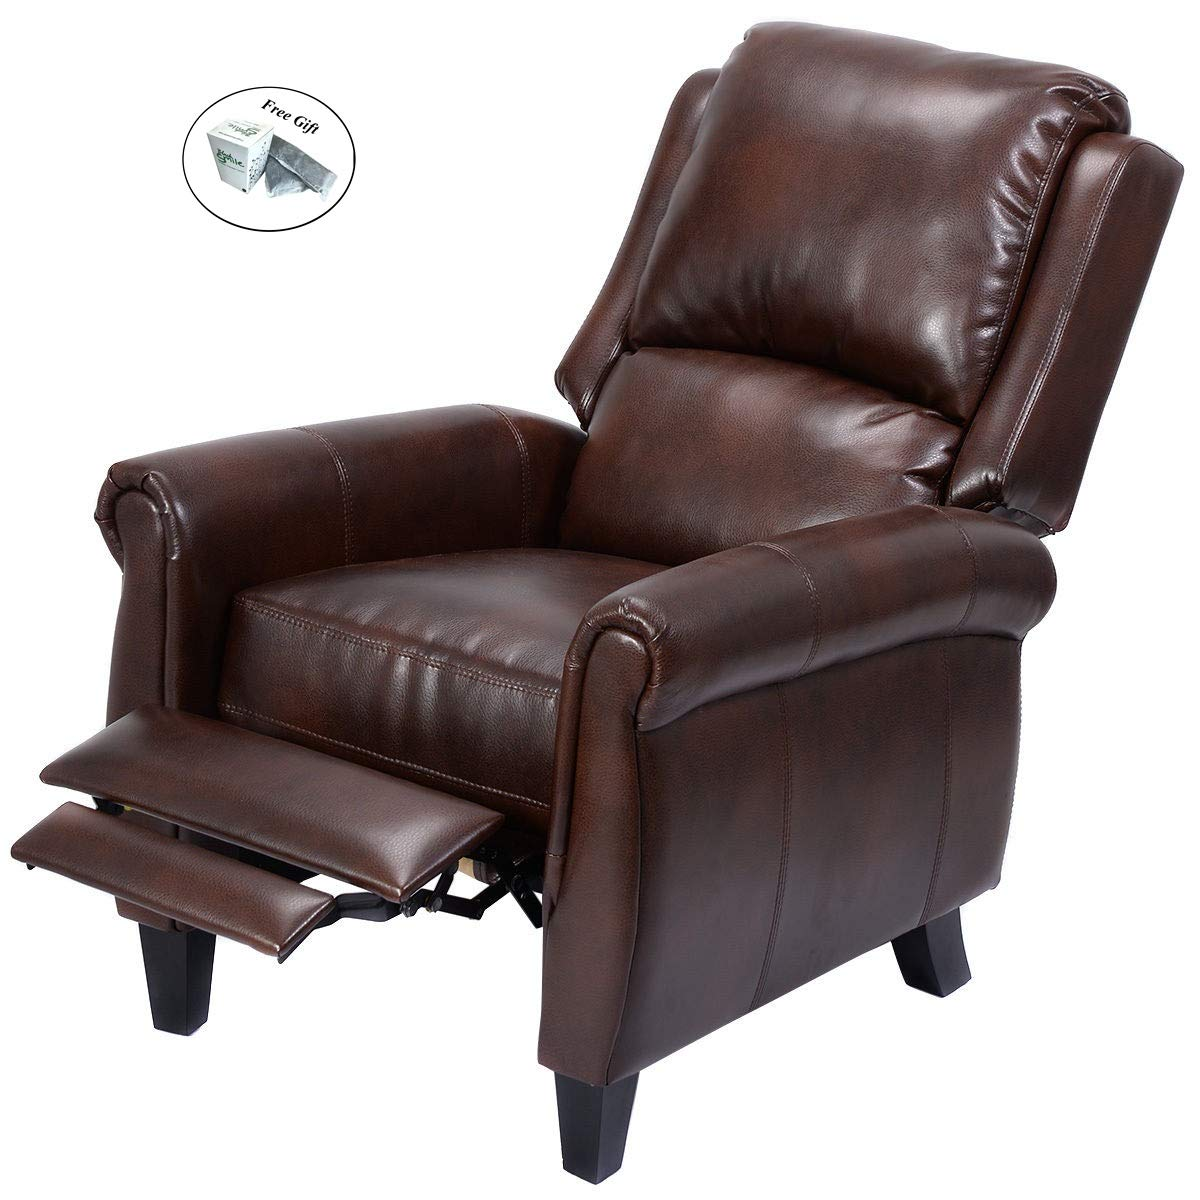 Amazon com eight24hours leather recliner accent chair push back living room home furniture w leg rests kitchen dining